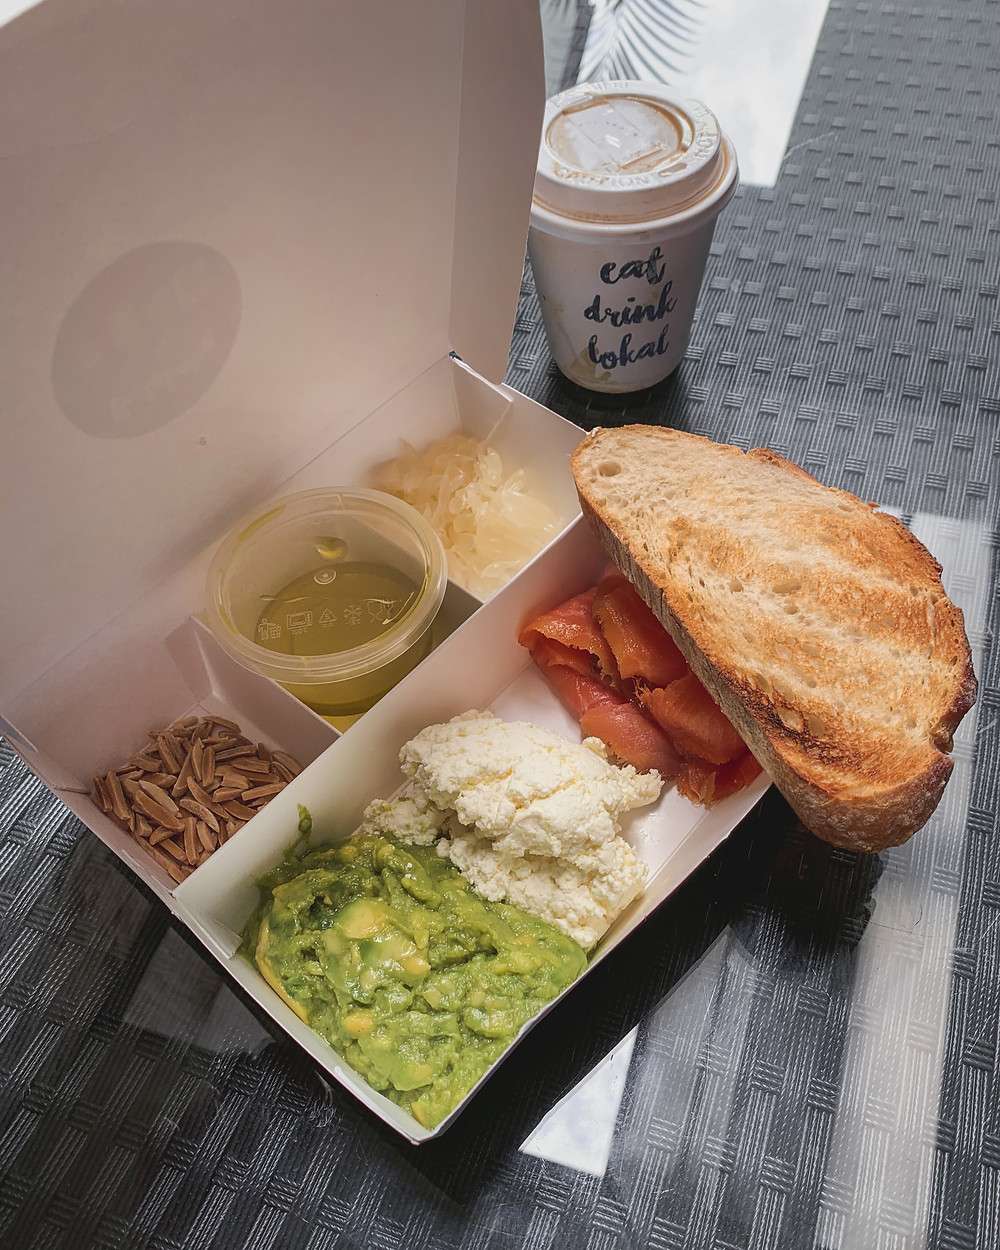 Rollingbear Travels blog/ avocado ricotta smoked salmon toast with pomelo, almond silvers, olive oil, delivery in compartmentalised paper box